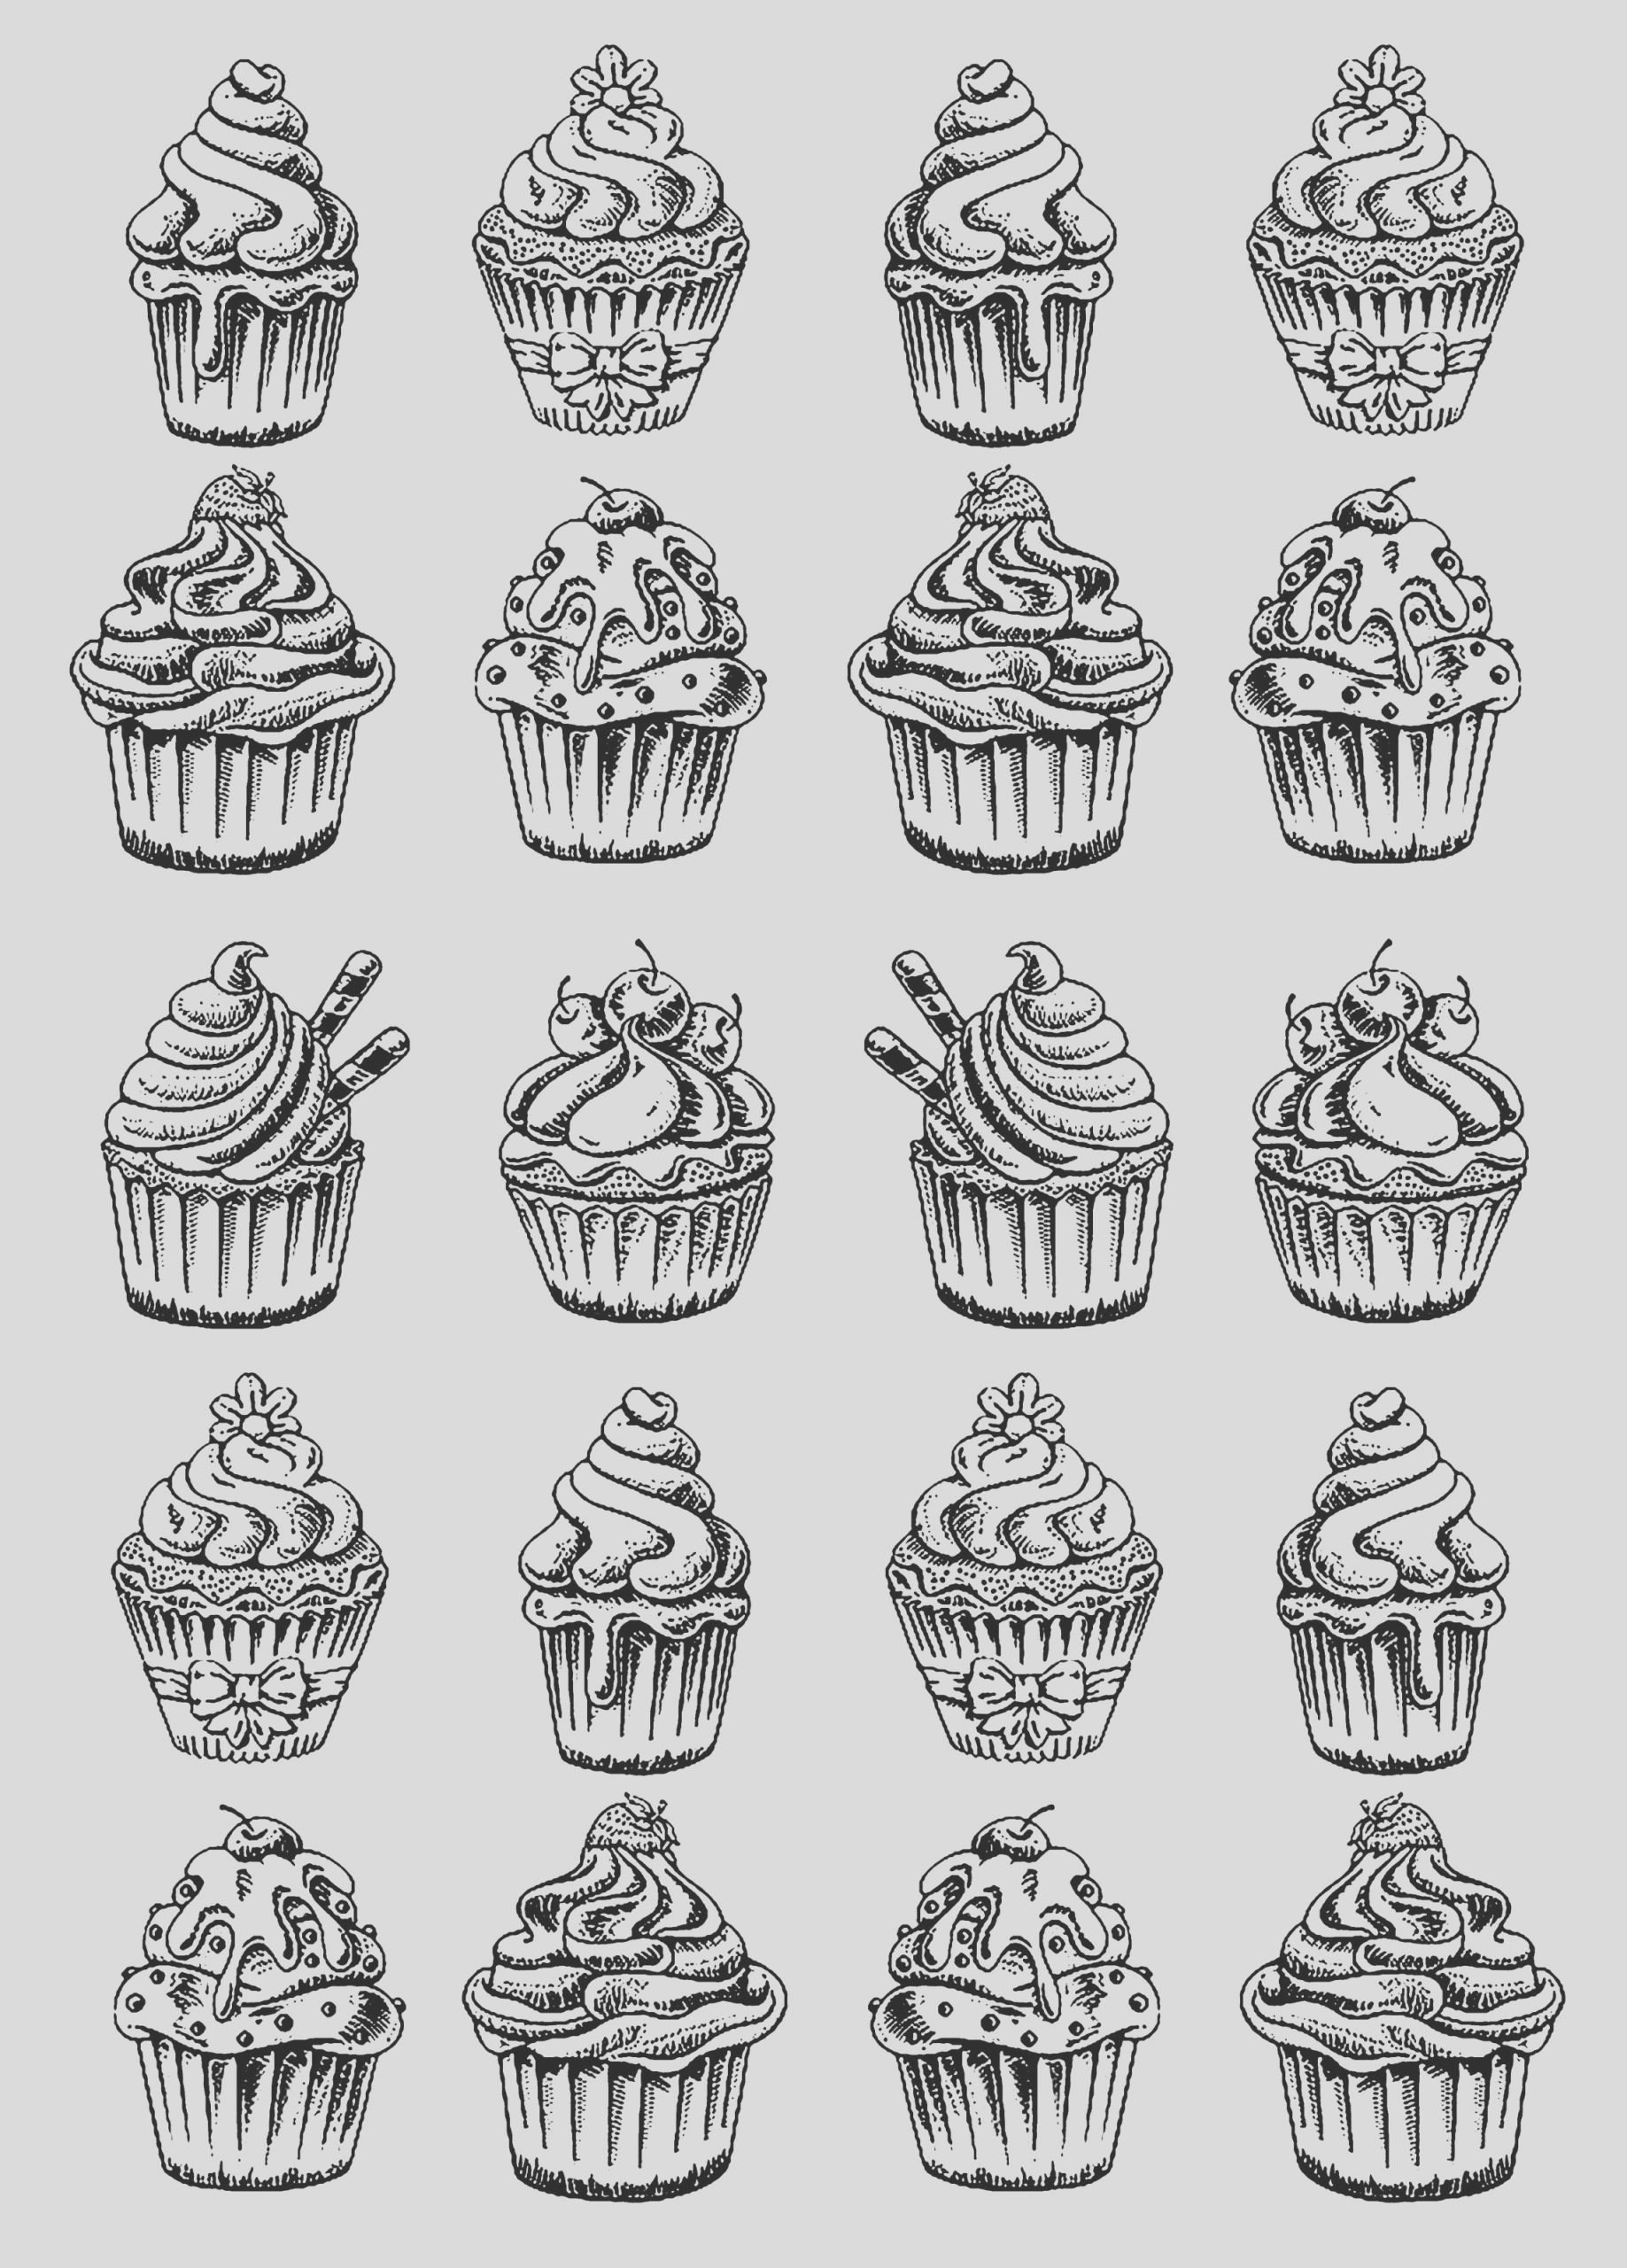 image=cup cakes coloring page twenty good cupcakes 1